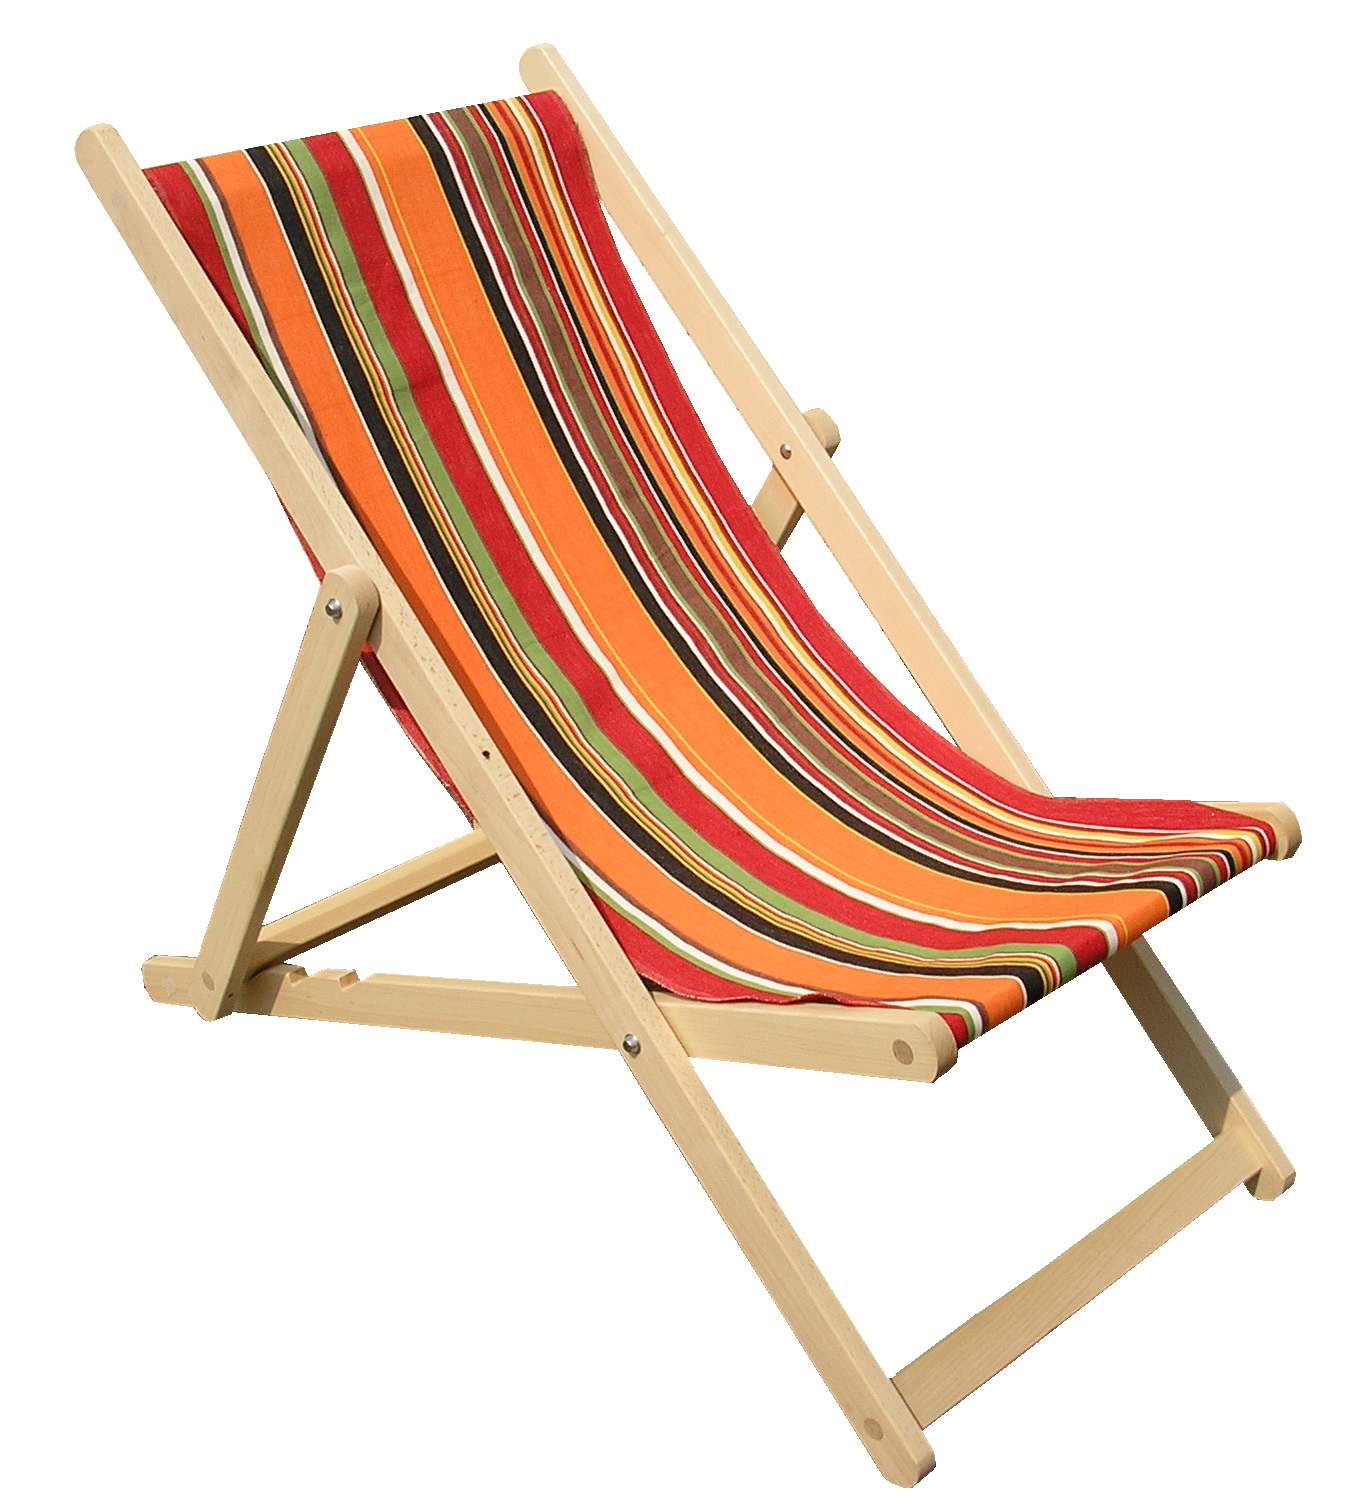 Orange Deckchairs Wooden Folding Deck Chairs Skipping Stripes The Stripes